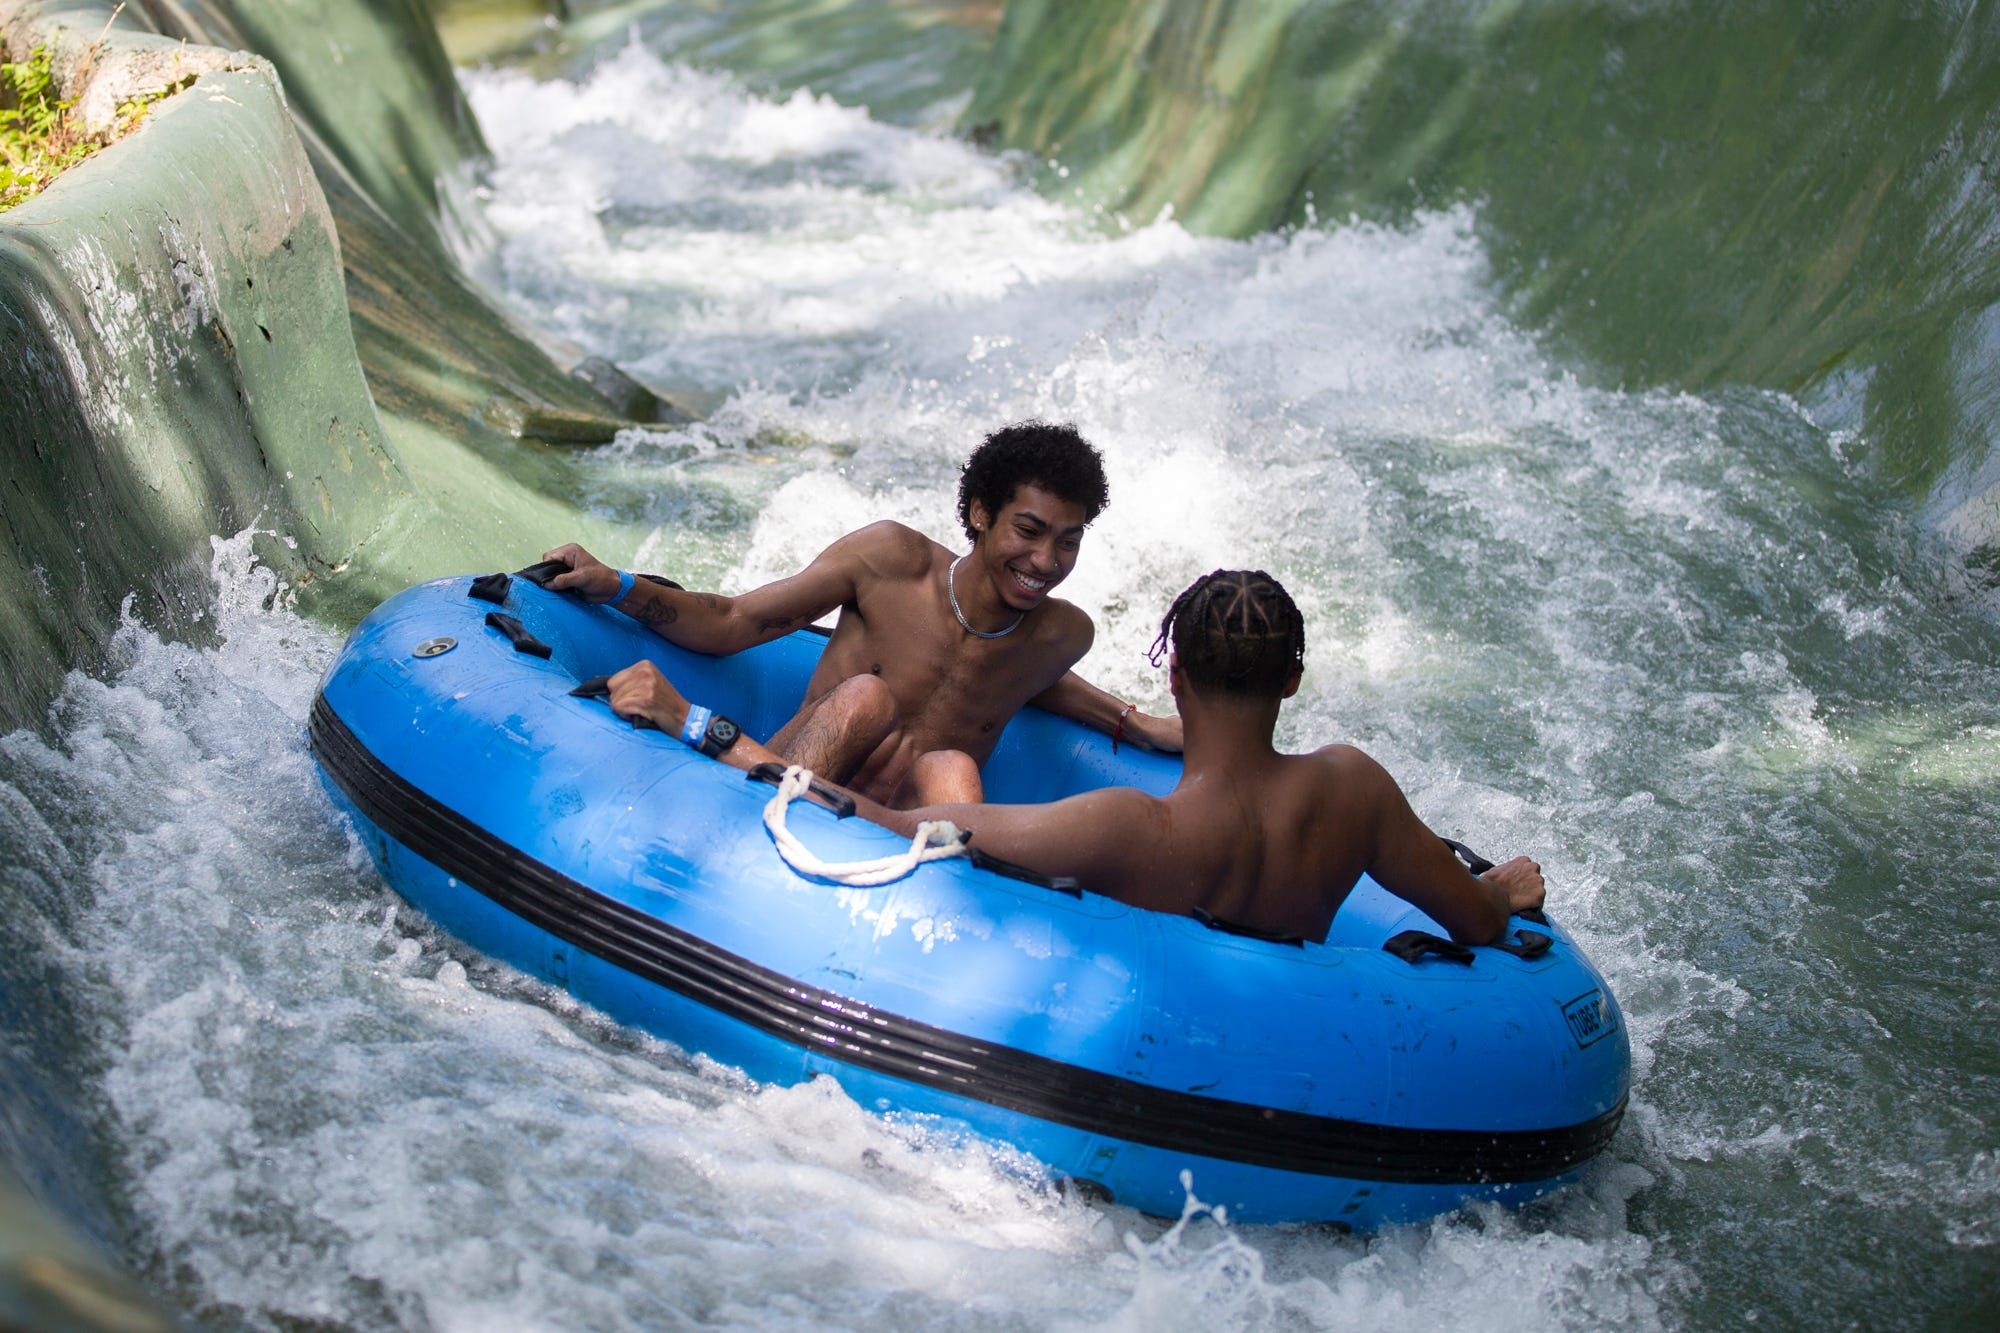 Guests pictured at Mountain Creek Waterpark in Vernon during the 2020 season.